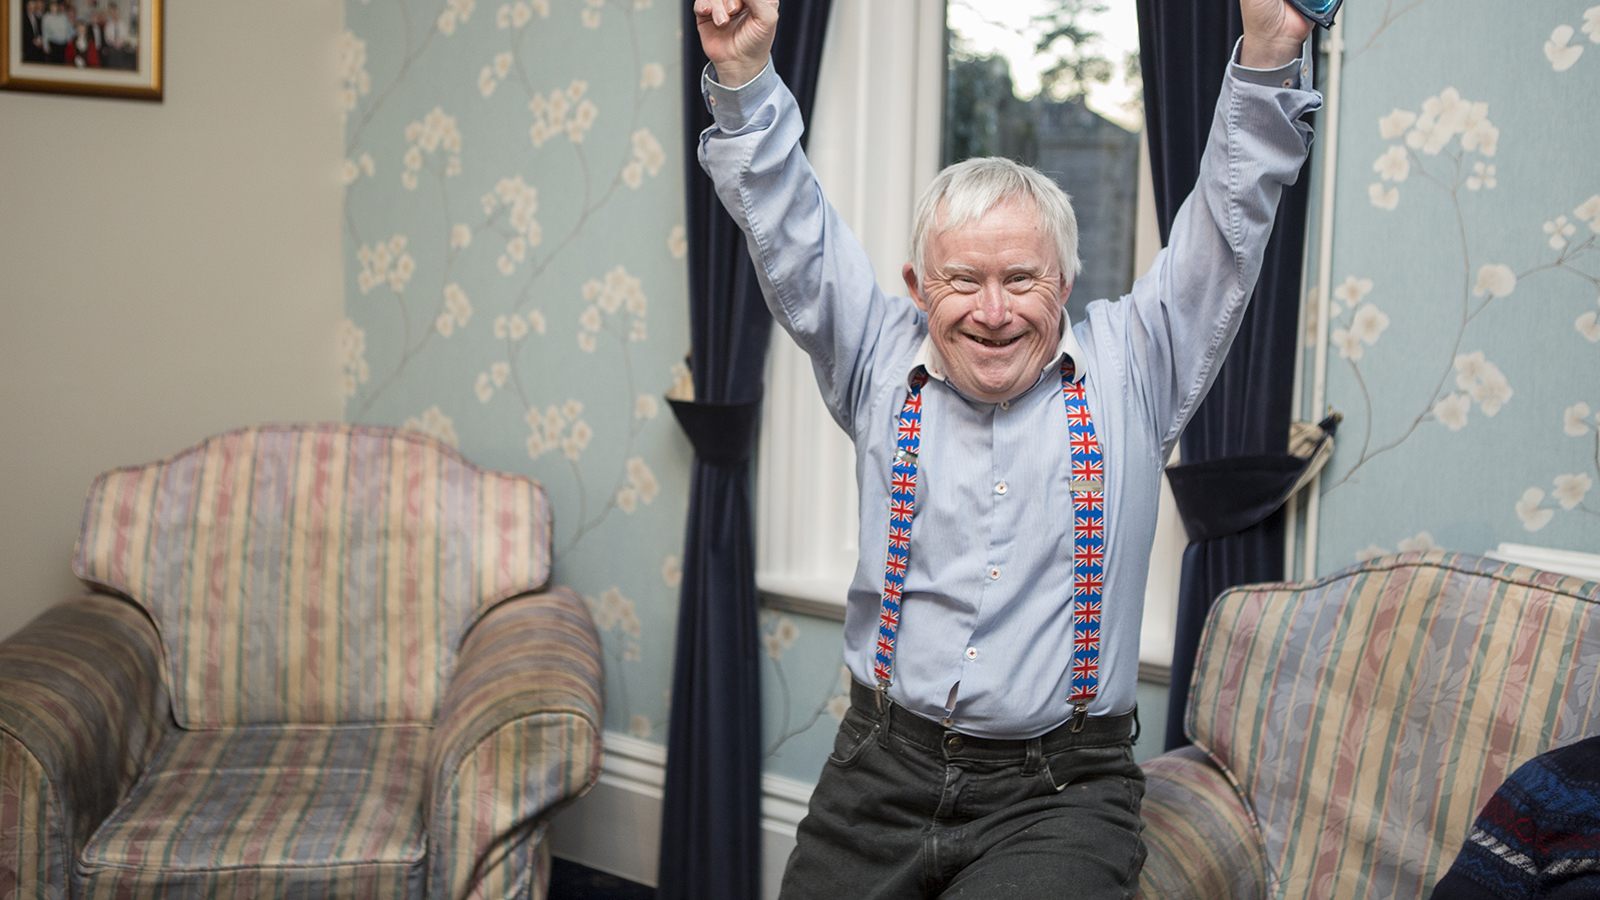 Older man stood in living room smiling with his arms raised in the air in celebration.